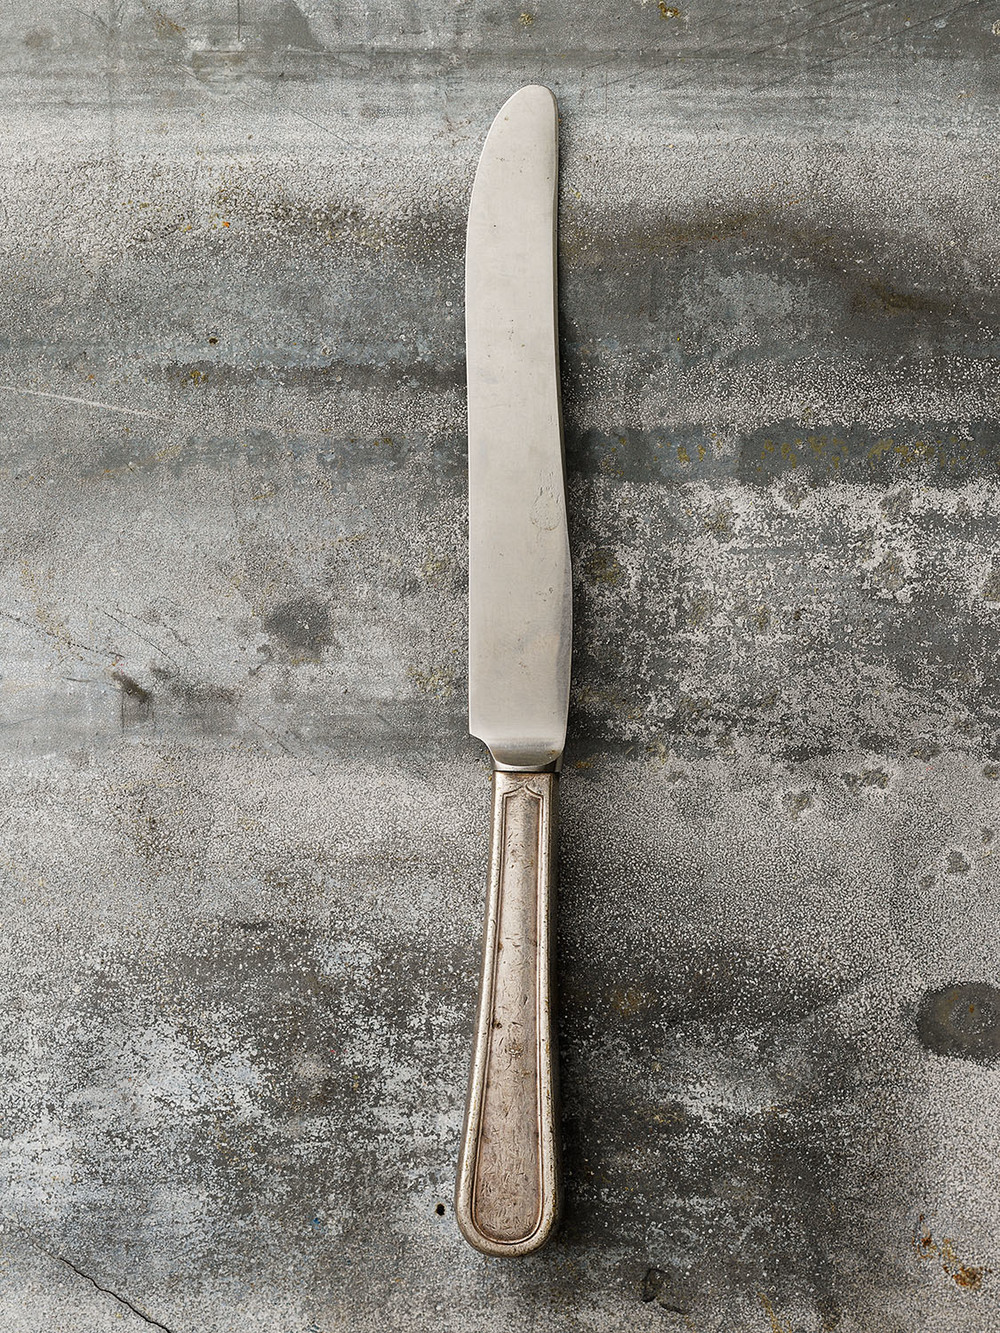 #3 Metal Handle Knife